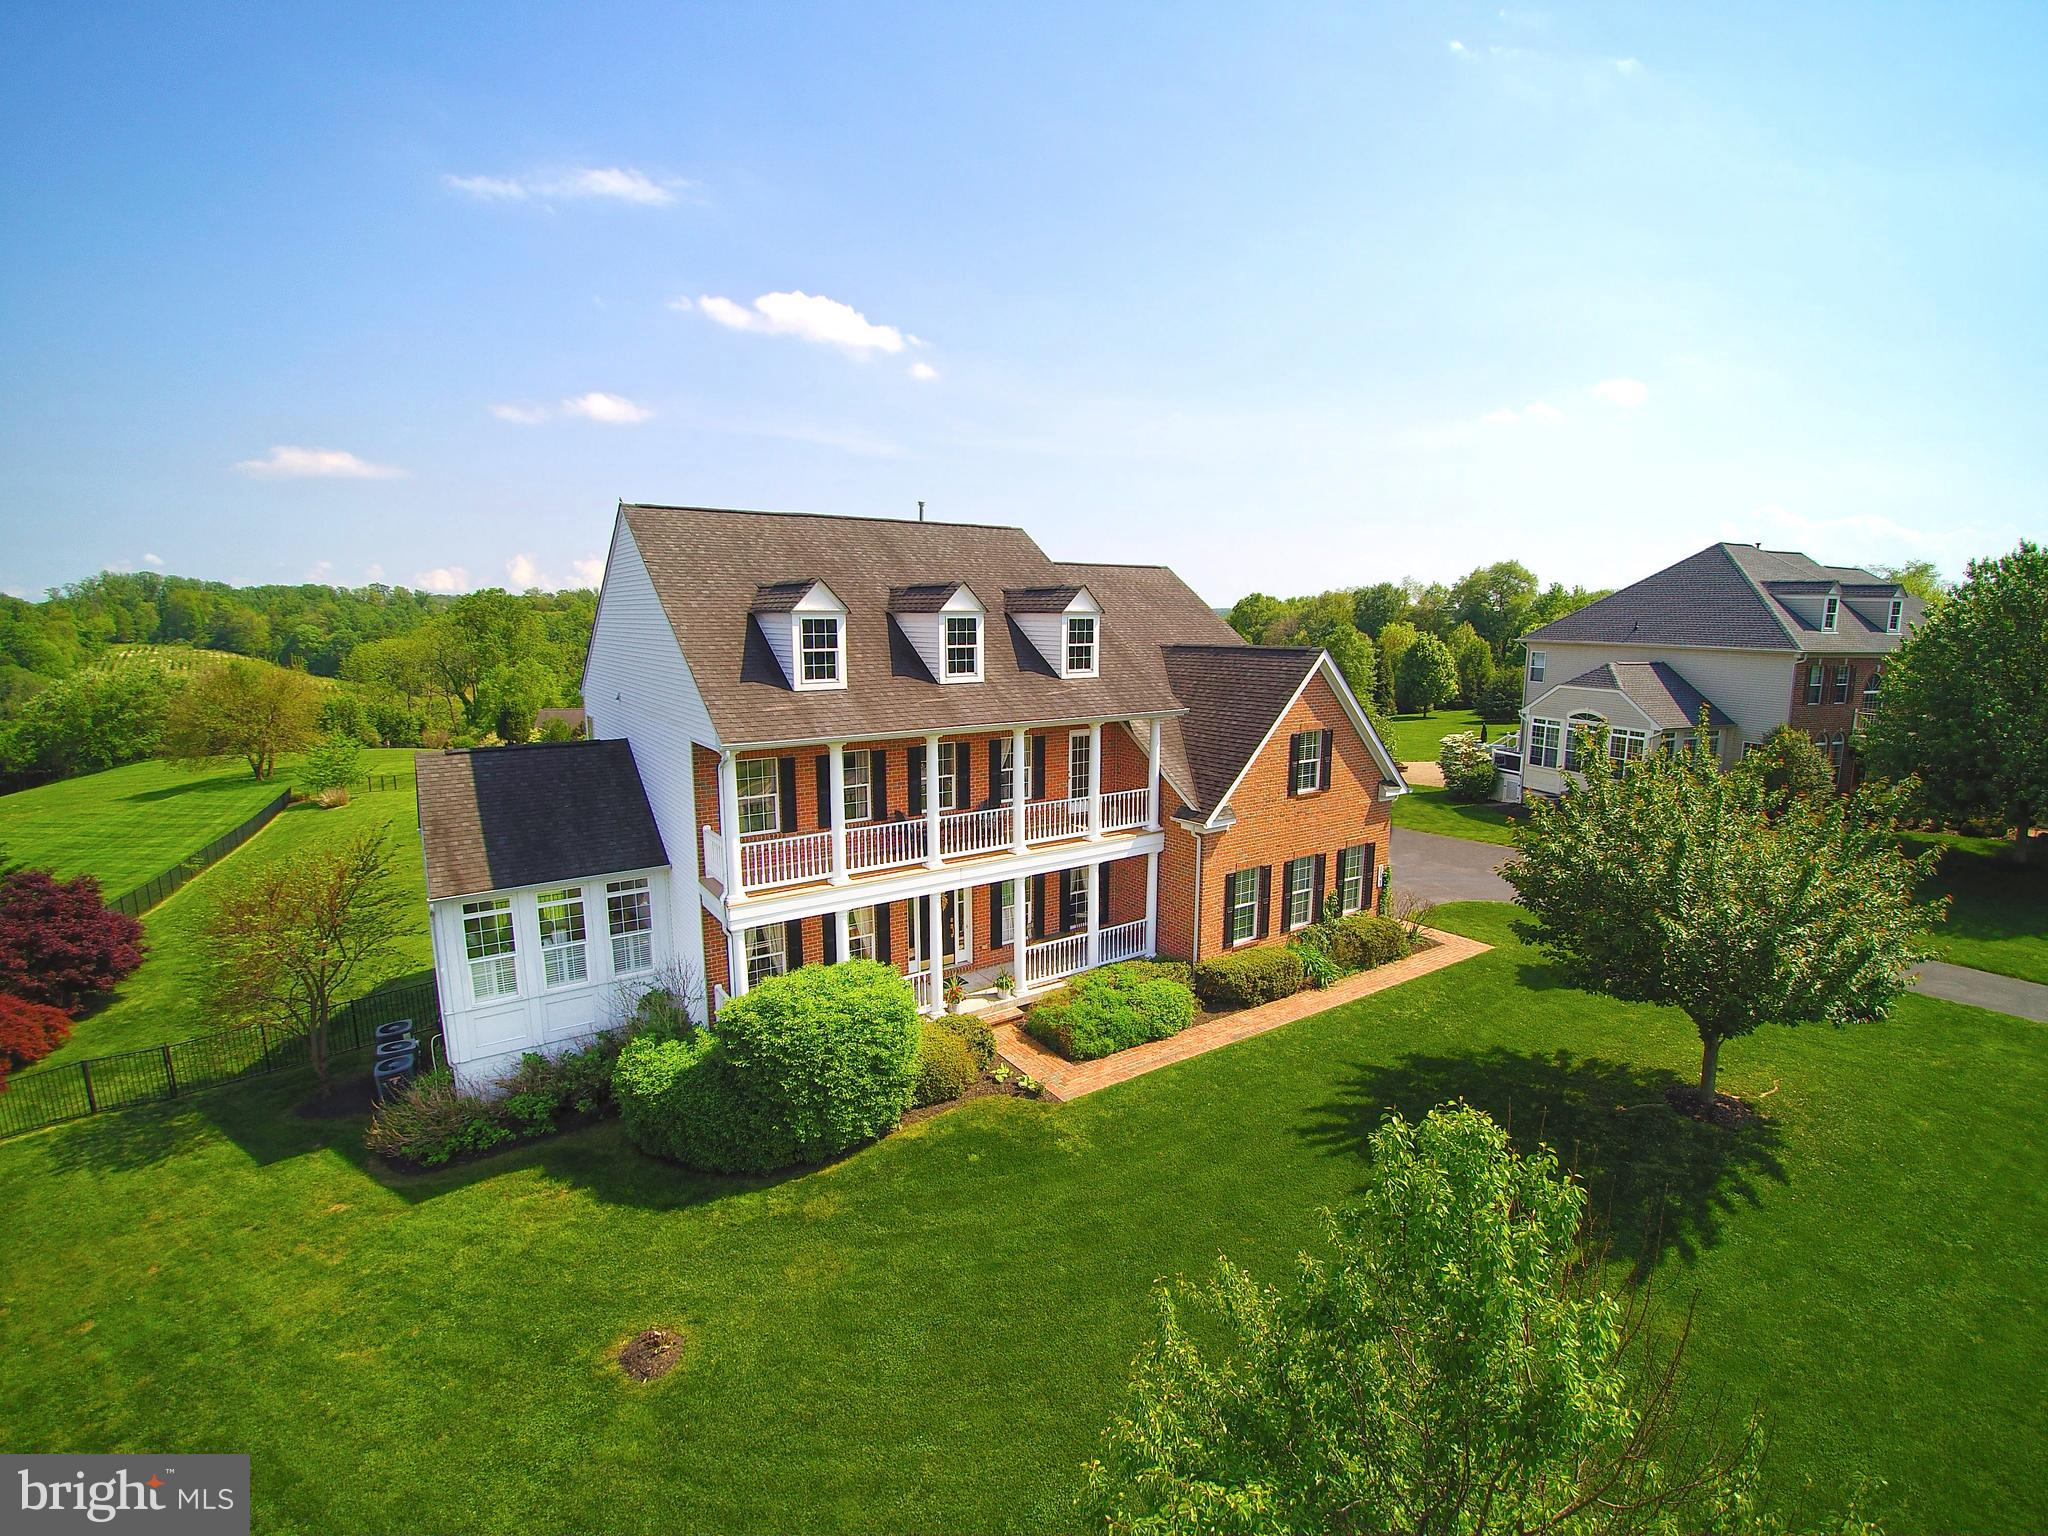 1121 SADDLE VIEW WAY, FOREST HILL, MD 21050